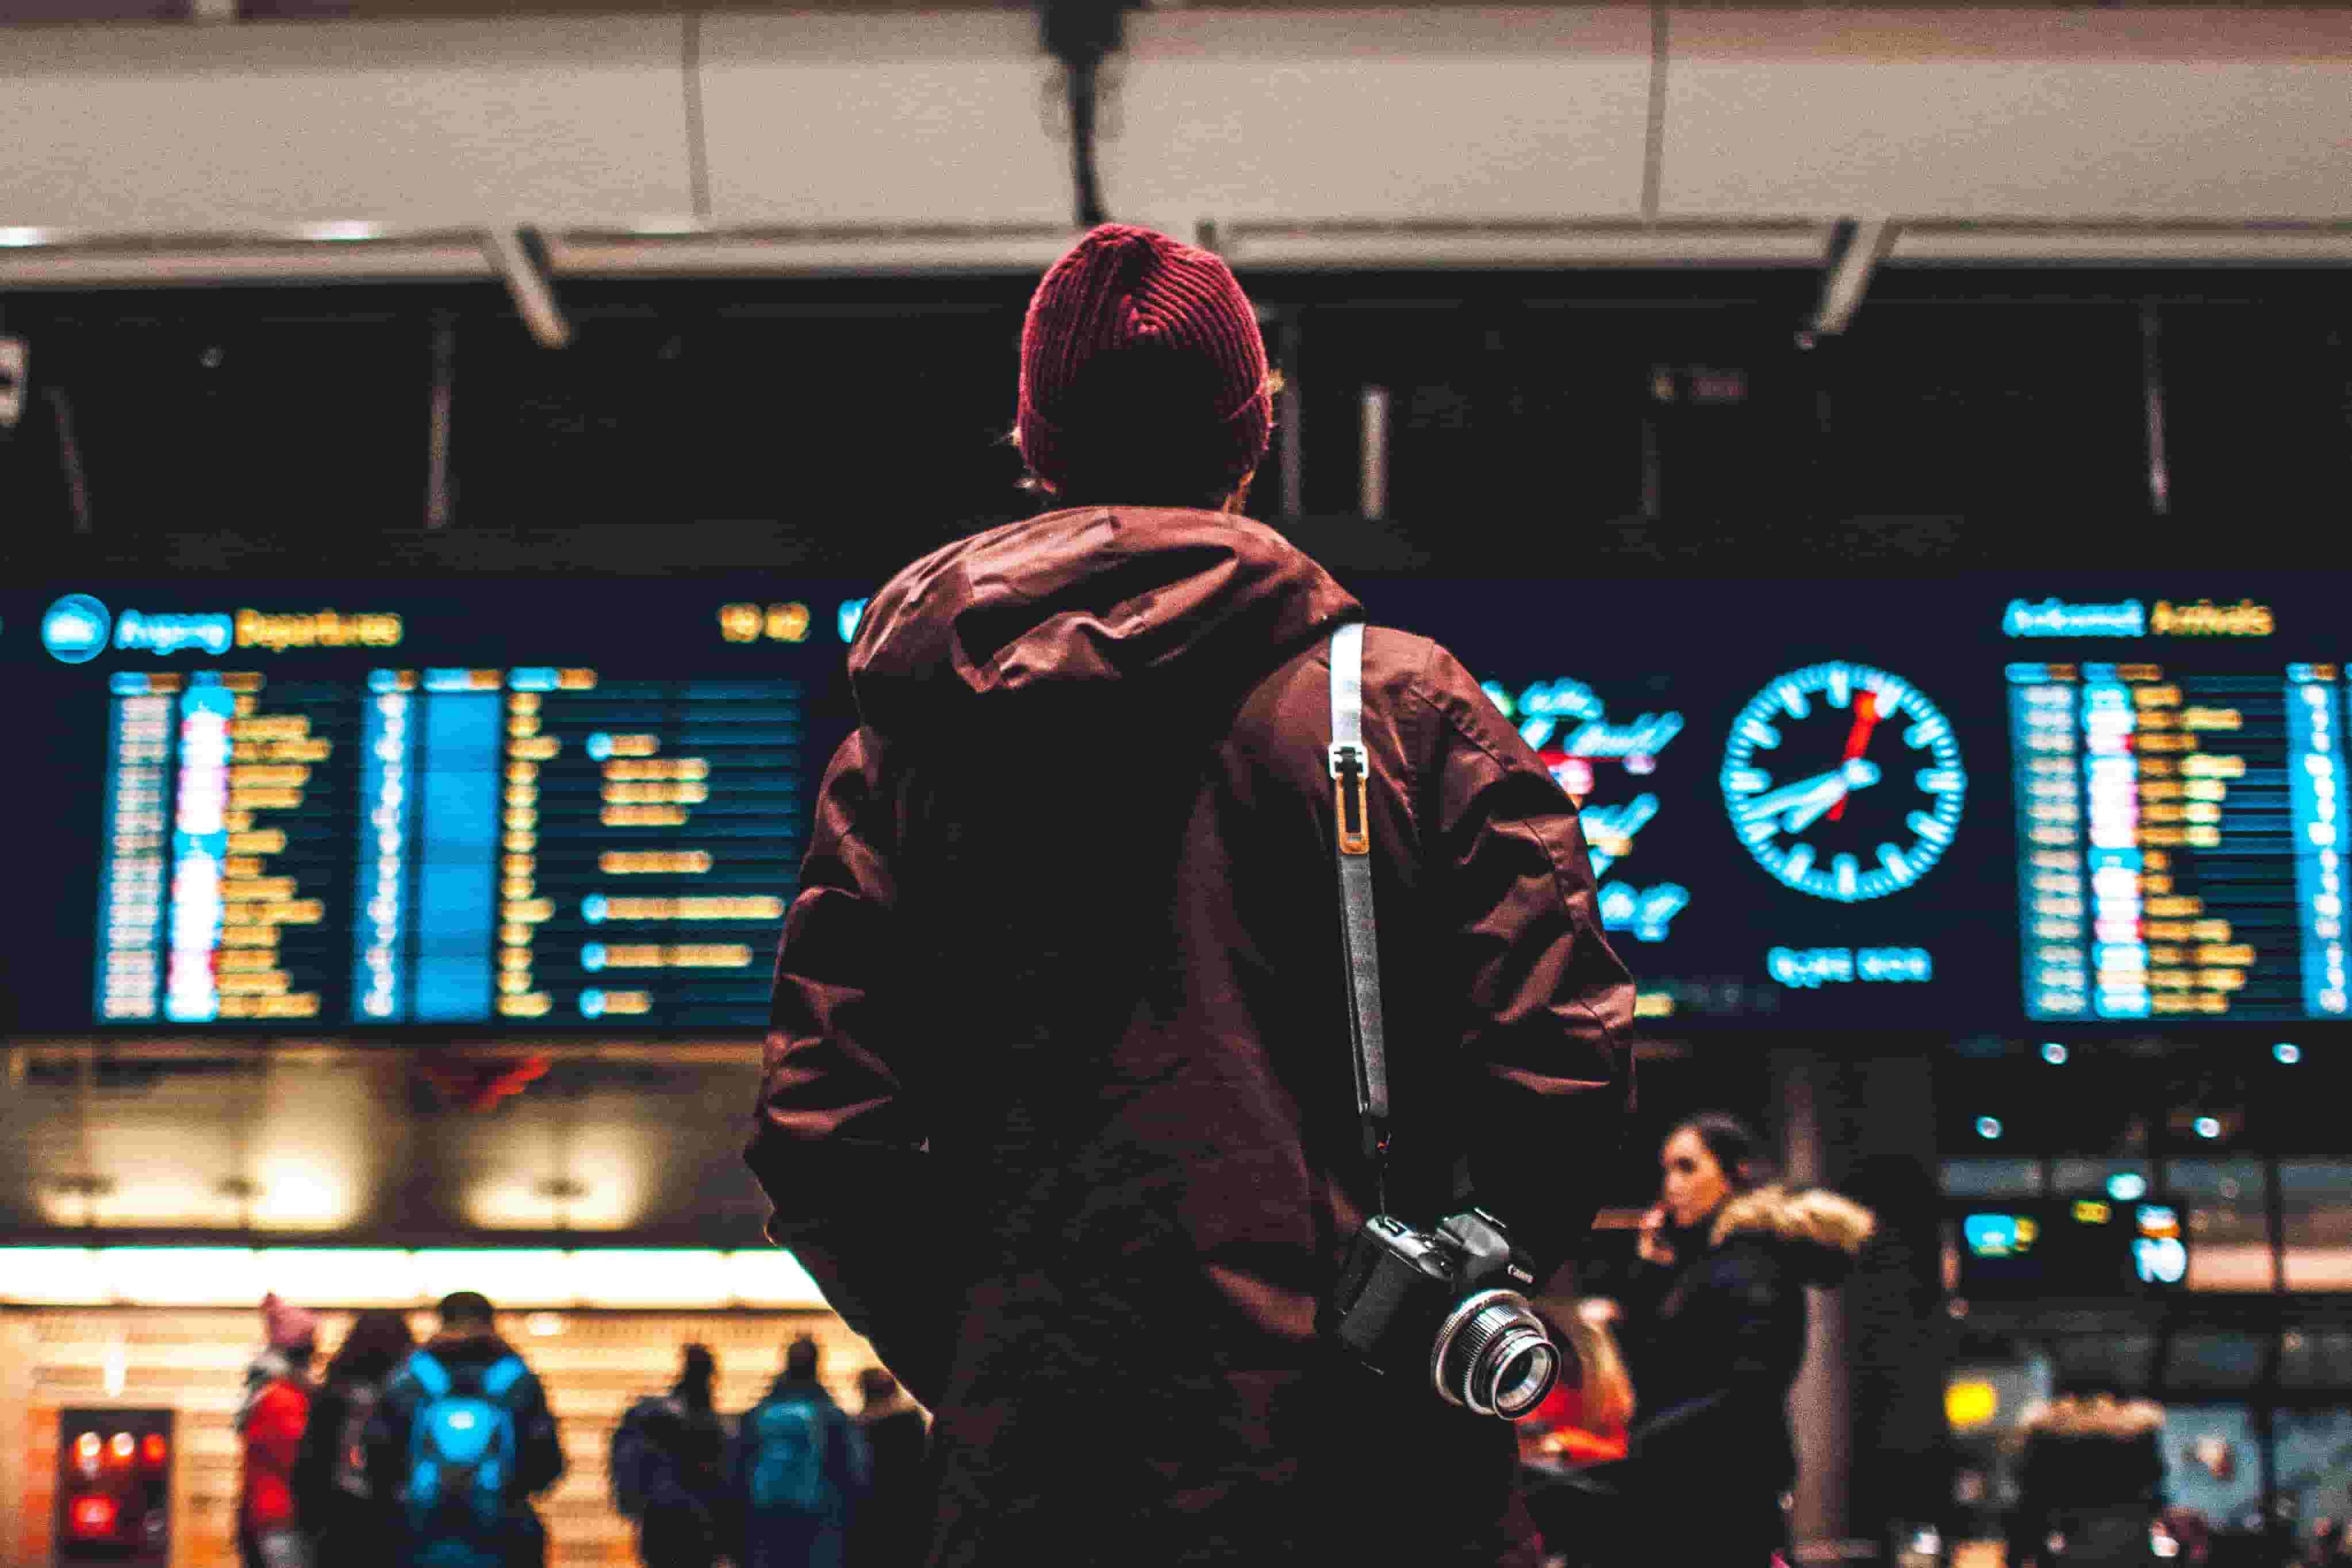 A man waits, looking up at the departure boards at the airport